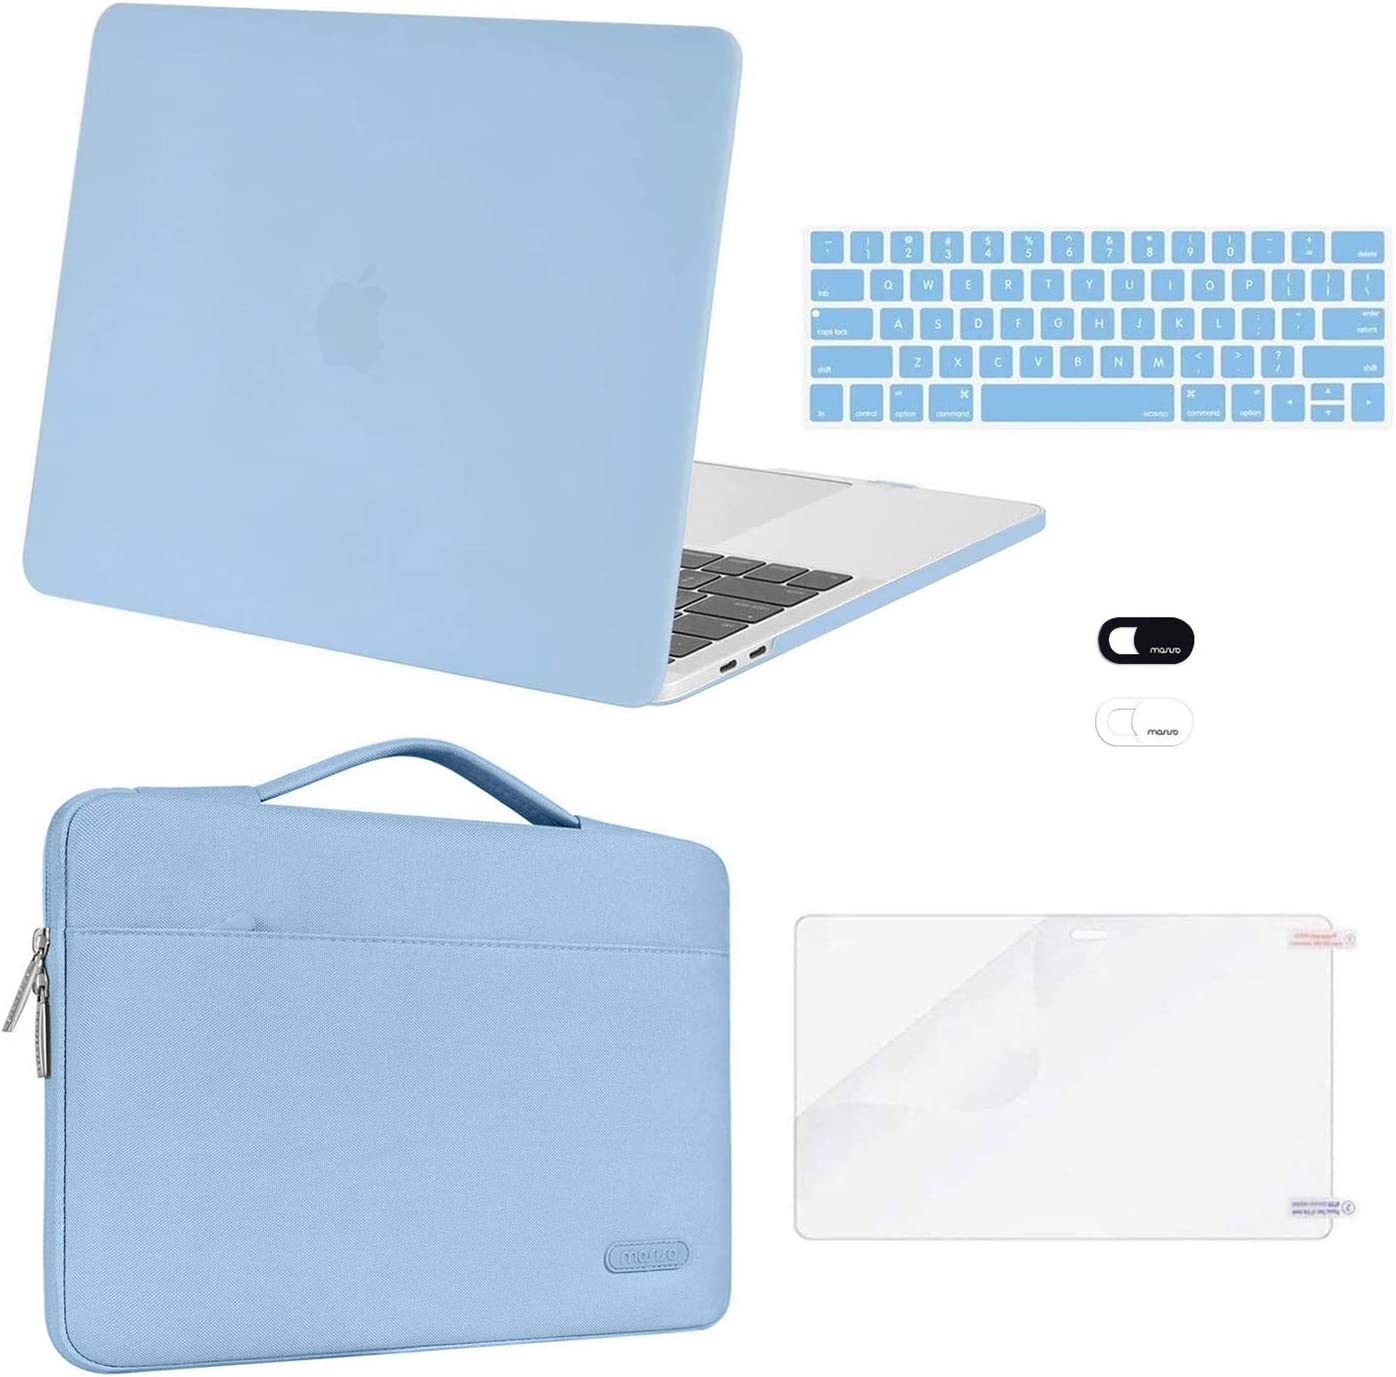 MOSISO Compatible with MacBook Pro 13 inch Case 2016-2020 Release A2338 M1 A2289 A2251 A2159 A1989 A1706 A1708, Plastic Hard Shell Case&Bag&Keyboard Skin&Webcam Cover&Screen Protector, Airy Blue